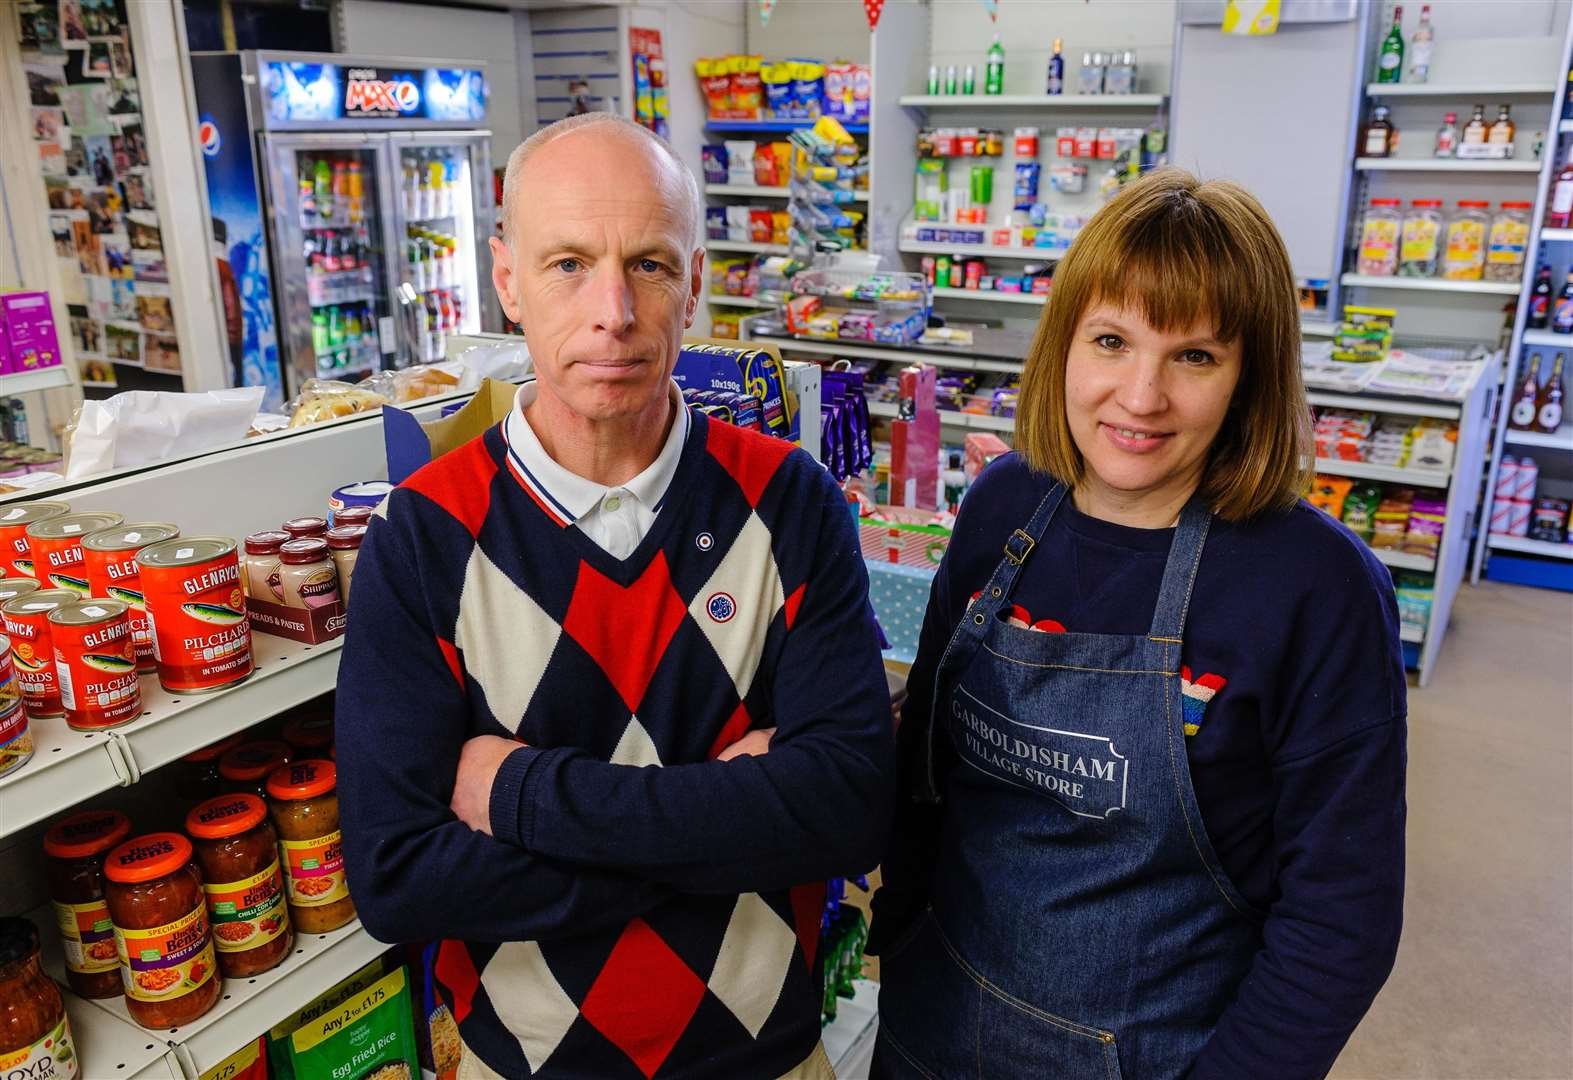 Owners appeal for support as fall in trade puts shop at risk